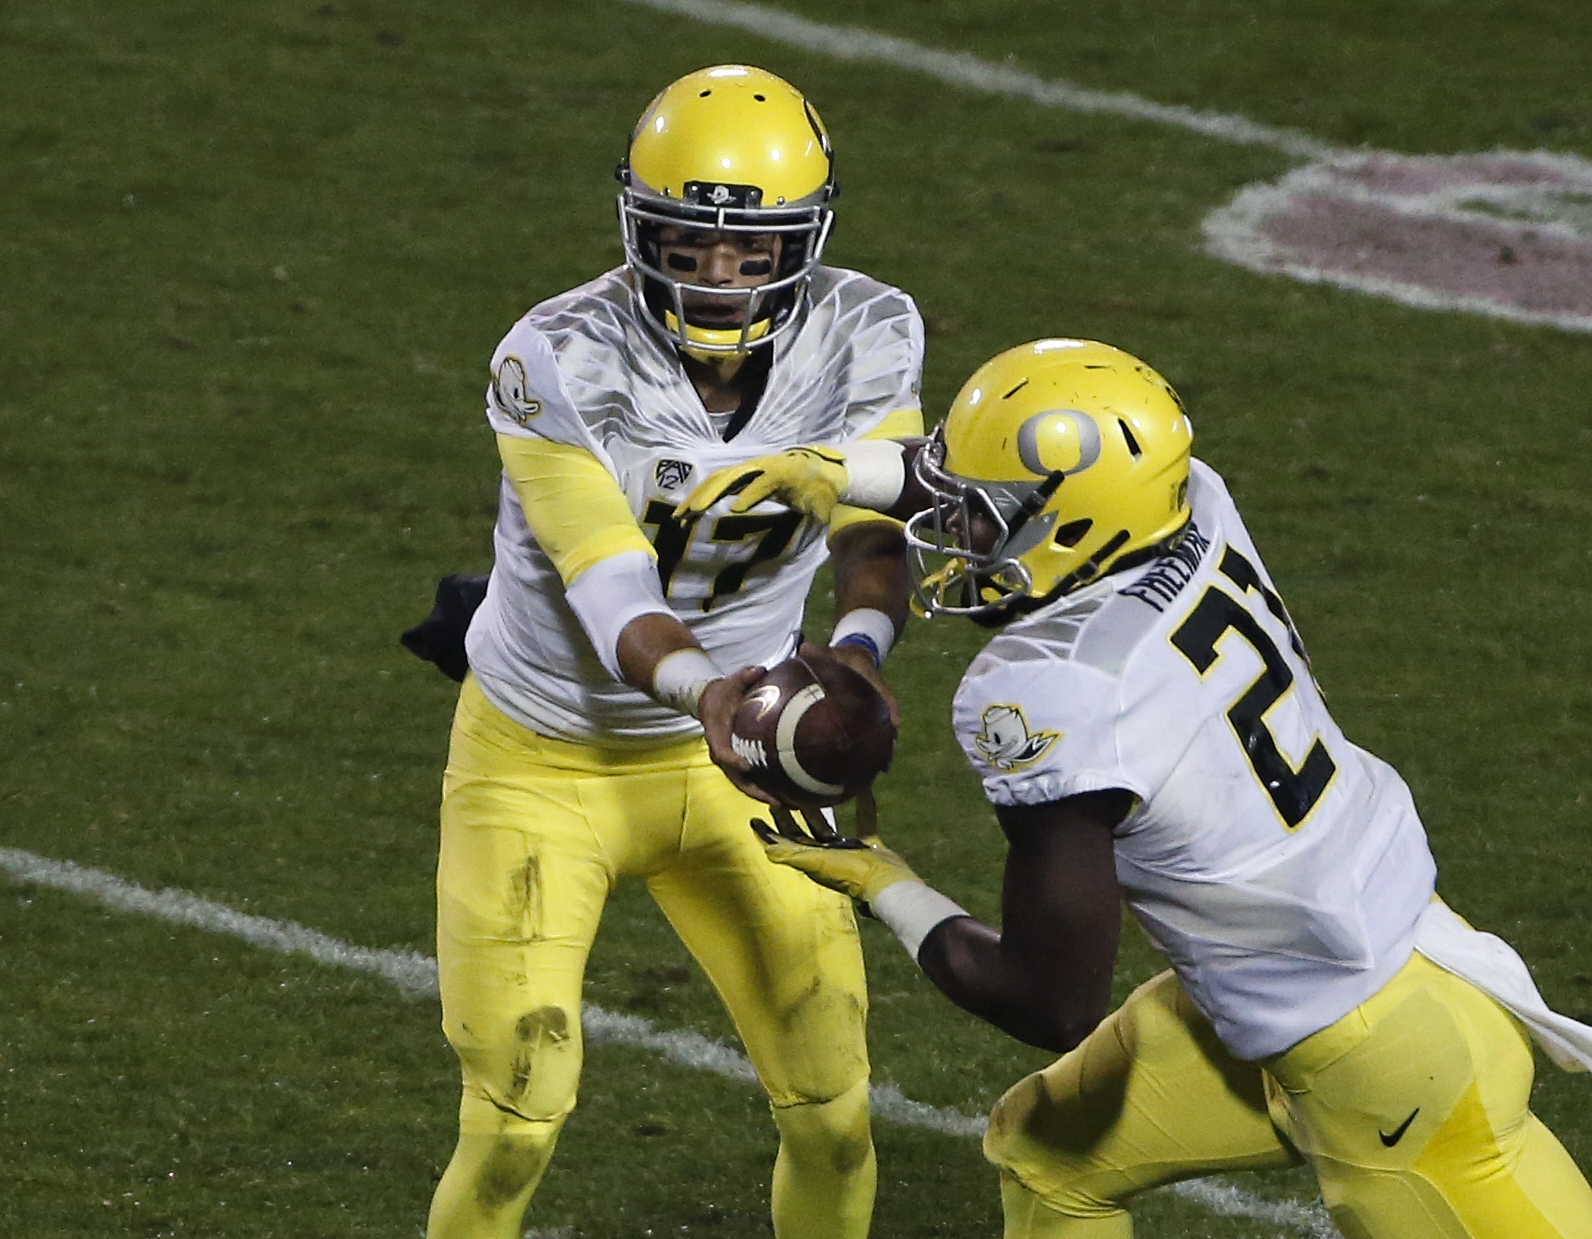 Oregon quarterback Jeff Lockie (17) hands off to running back Royce Freeman (21) during an NCAA college football game against Colorado, in Boulder, Colo., Saturday, Oct. 3, 2015. (AP Photo/Brennan Linsley)